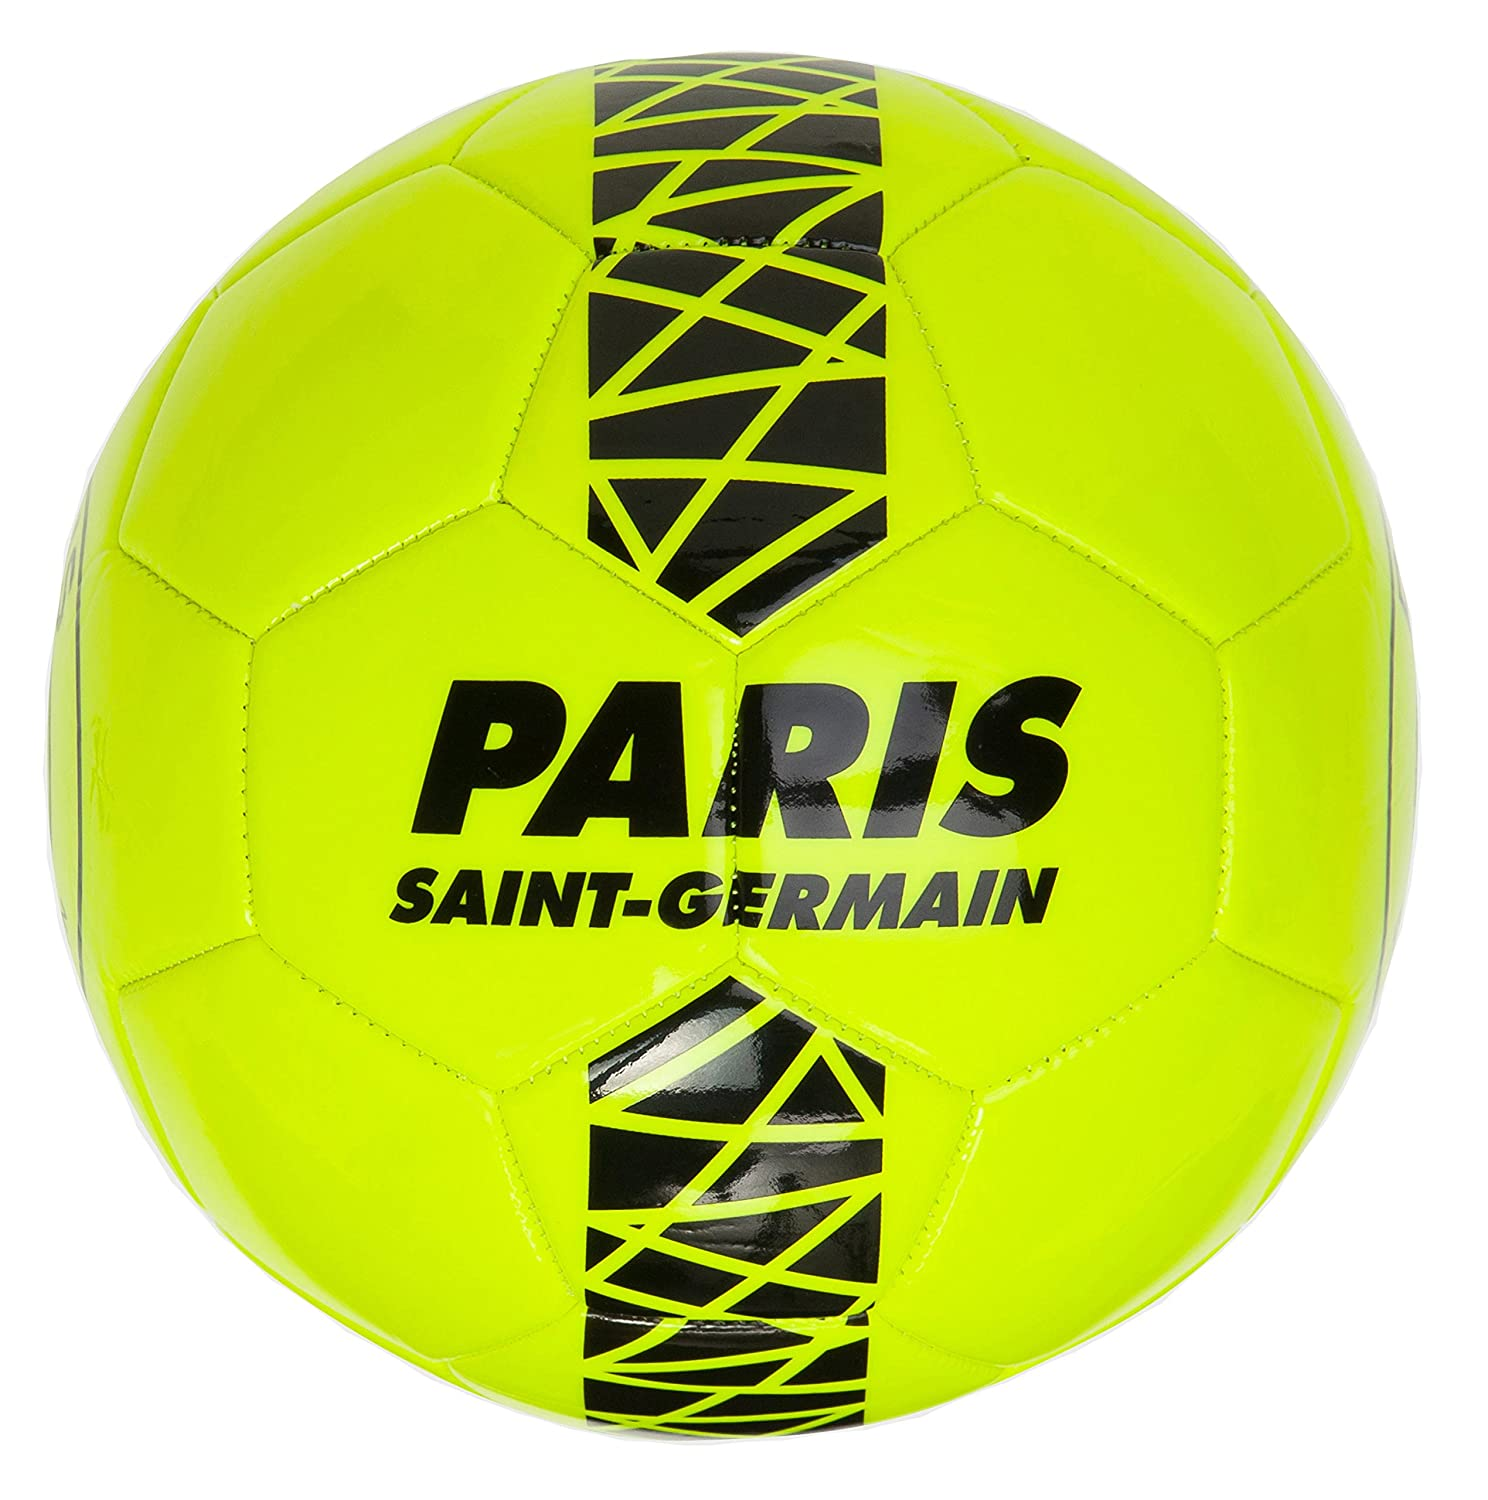 Paris Saint Germain - Balón de fútbol talla 5: Amazon.es: Deportes ...